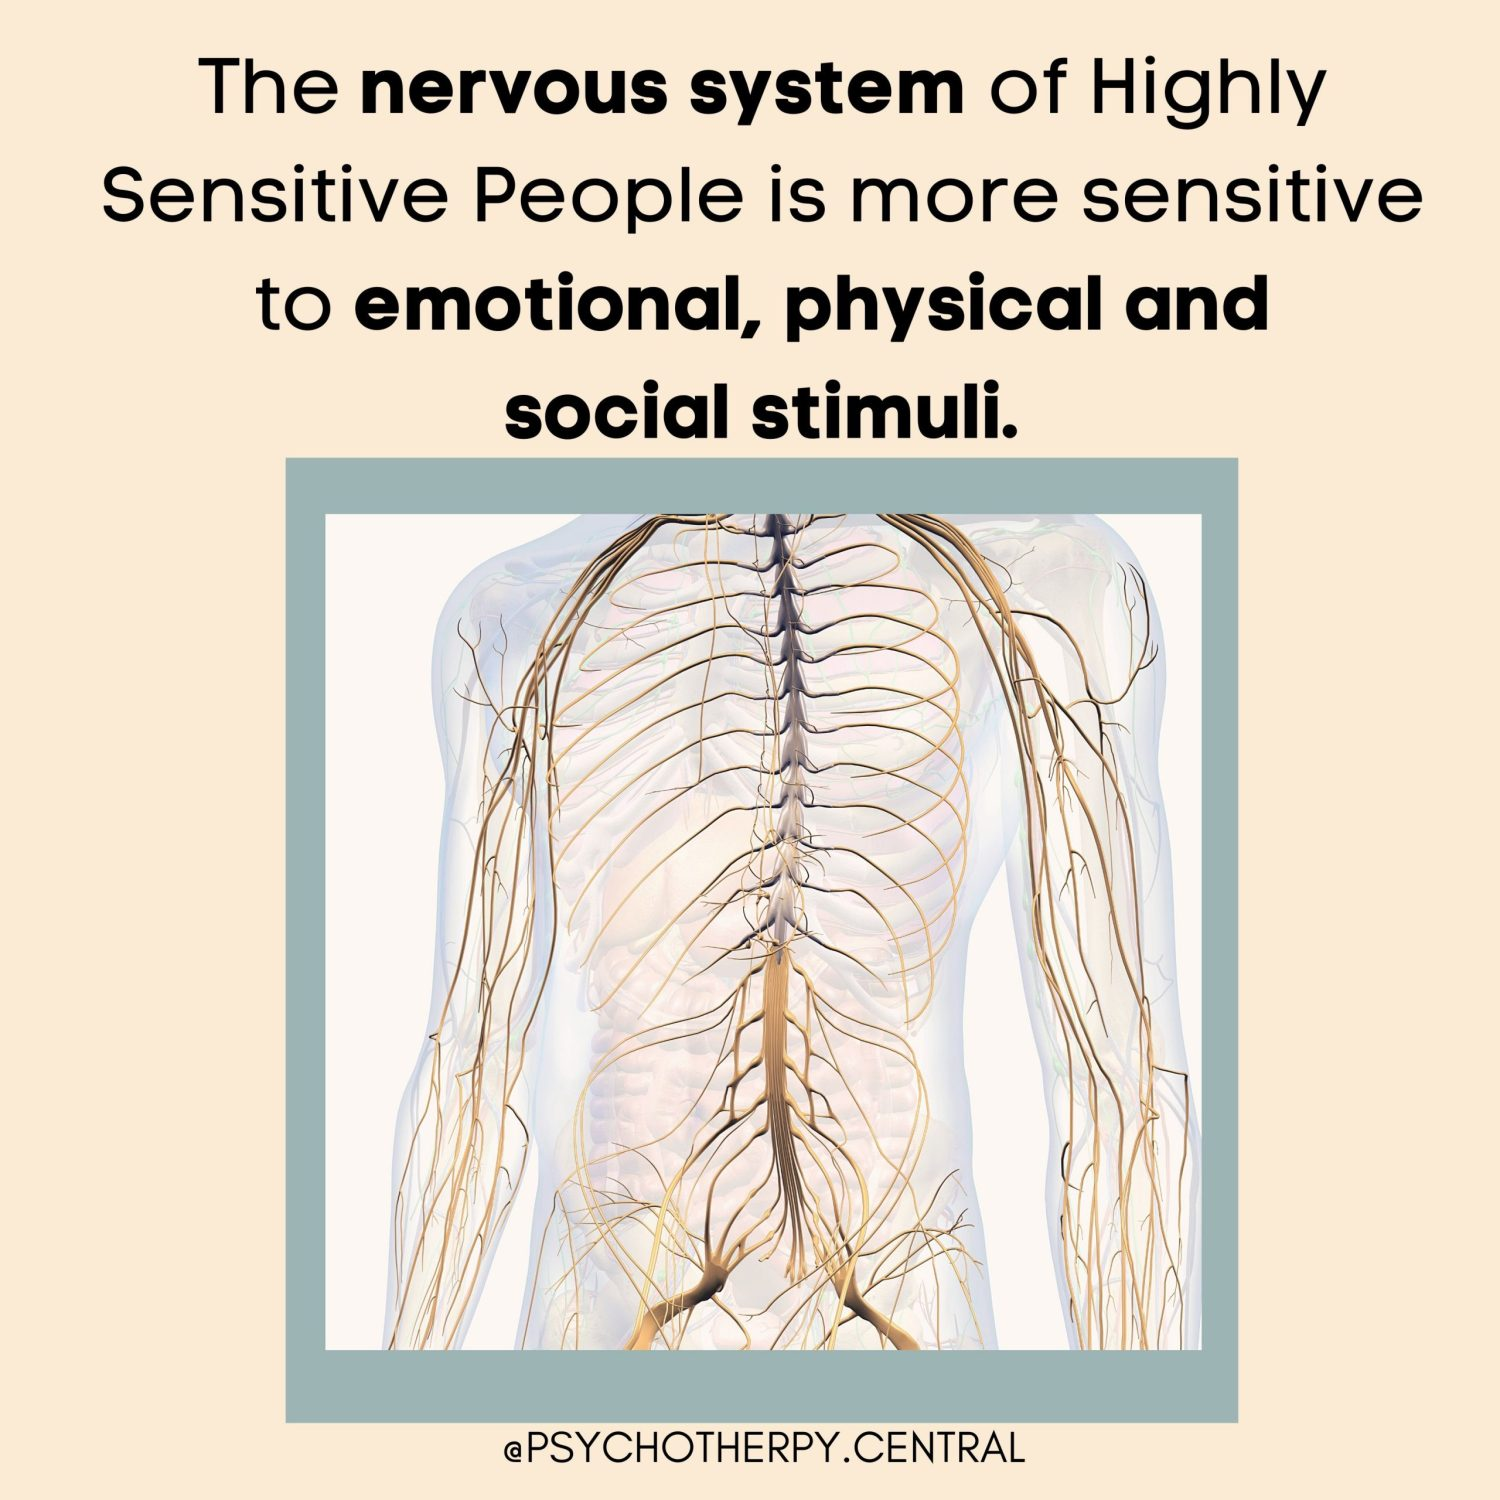 The Nervous System of Highly Sensitive People